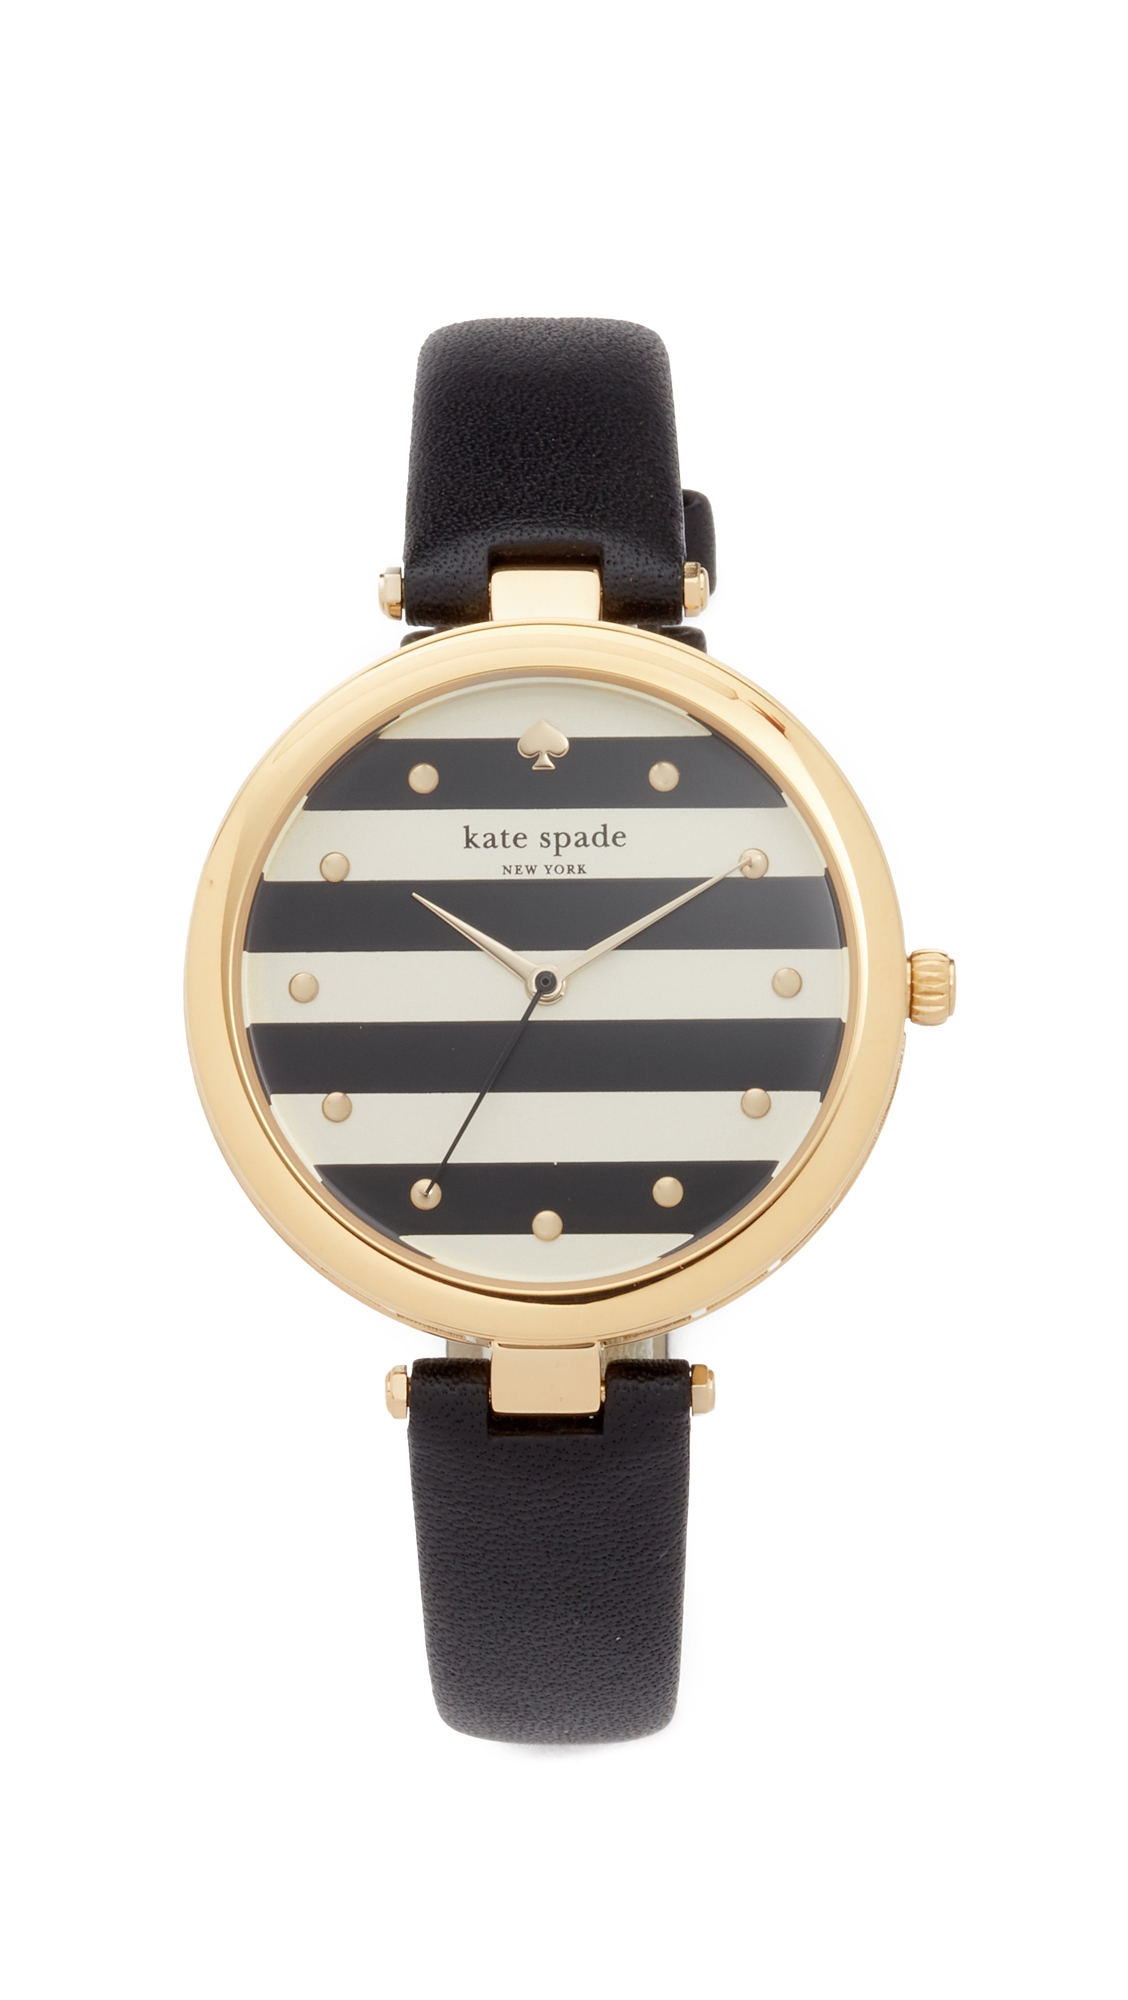 Kate Spade New York Varick Stripe Leather Watch, 36mm - Black/White/Gold